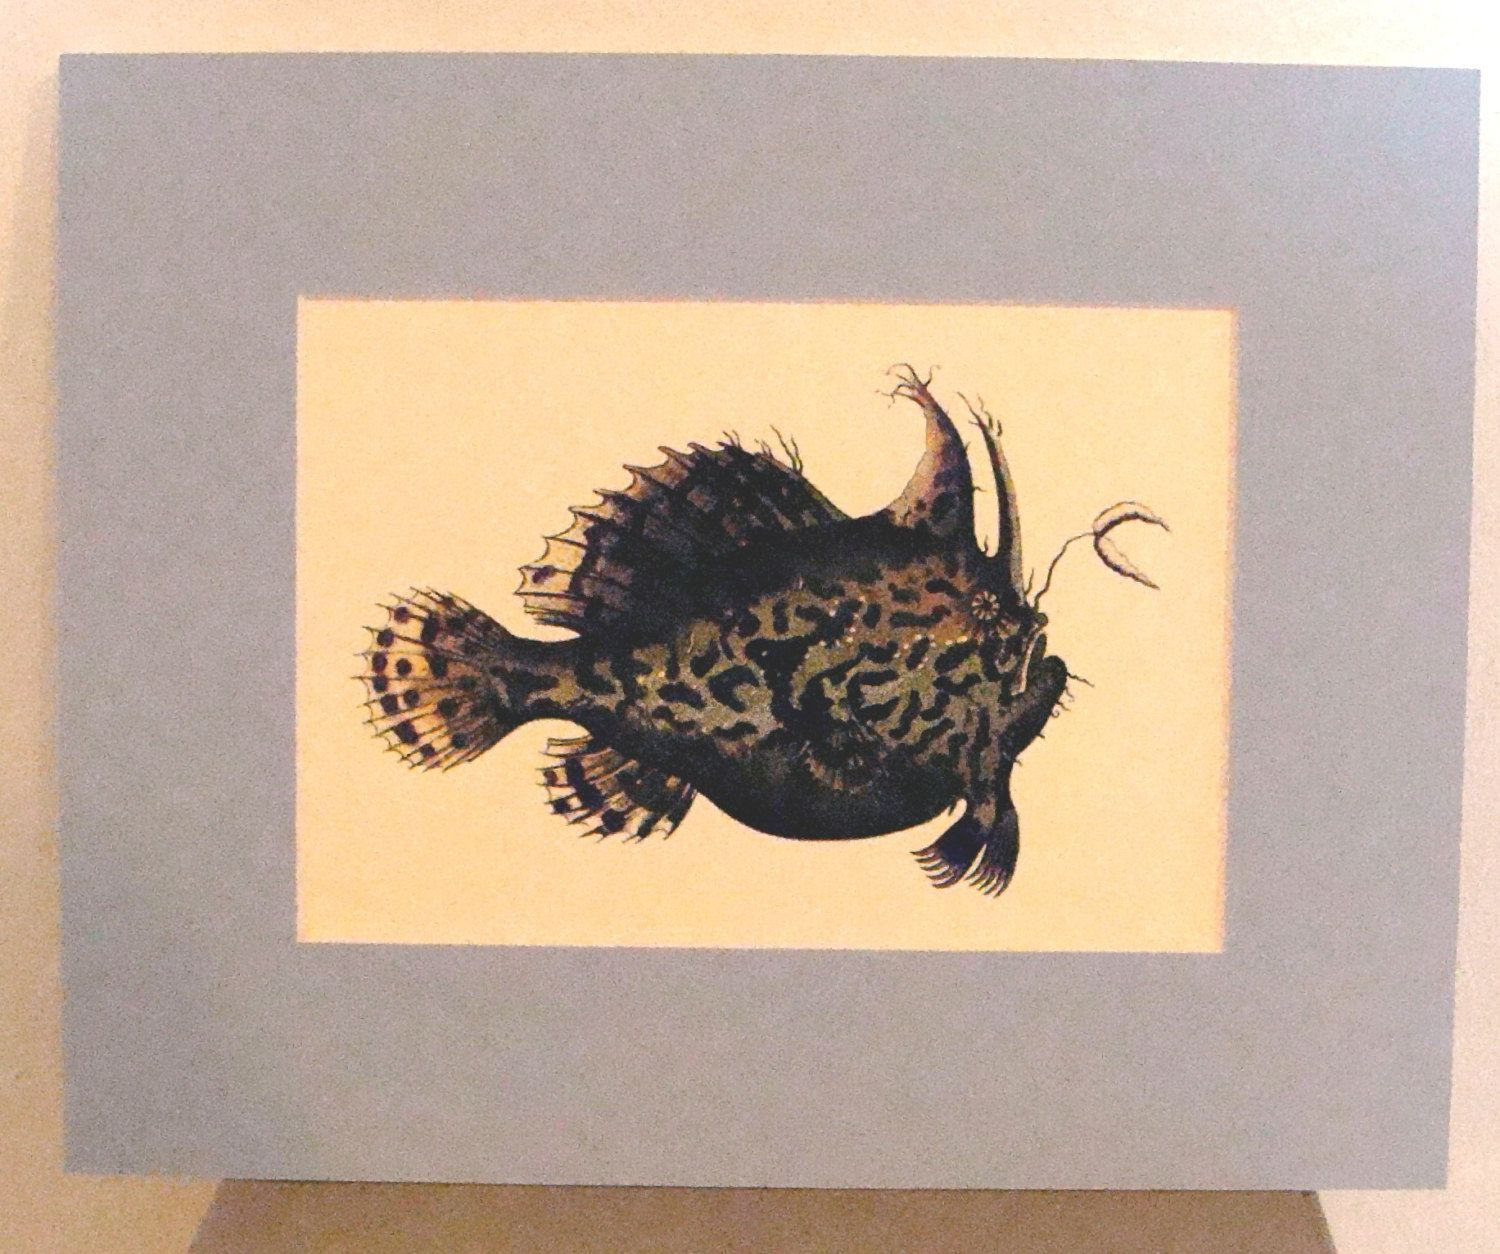 Sale 5 x 7 inch Angler Fish Matted Print Ready to Frame